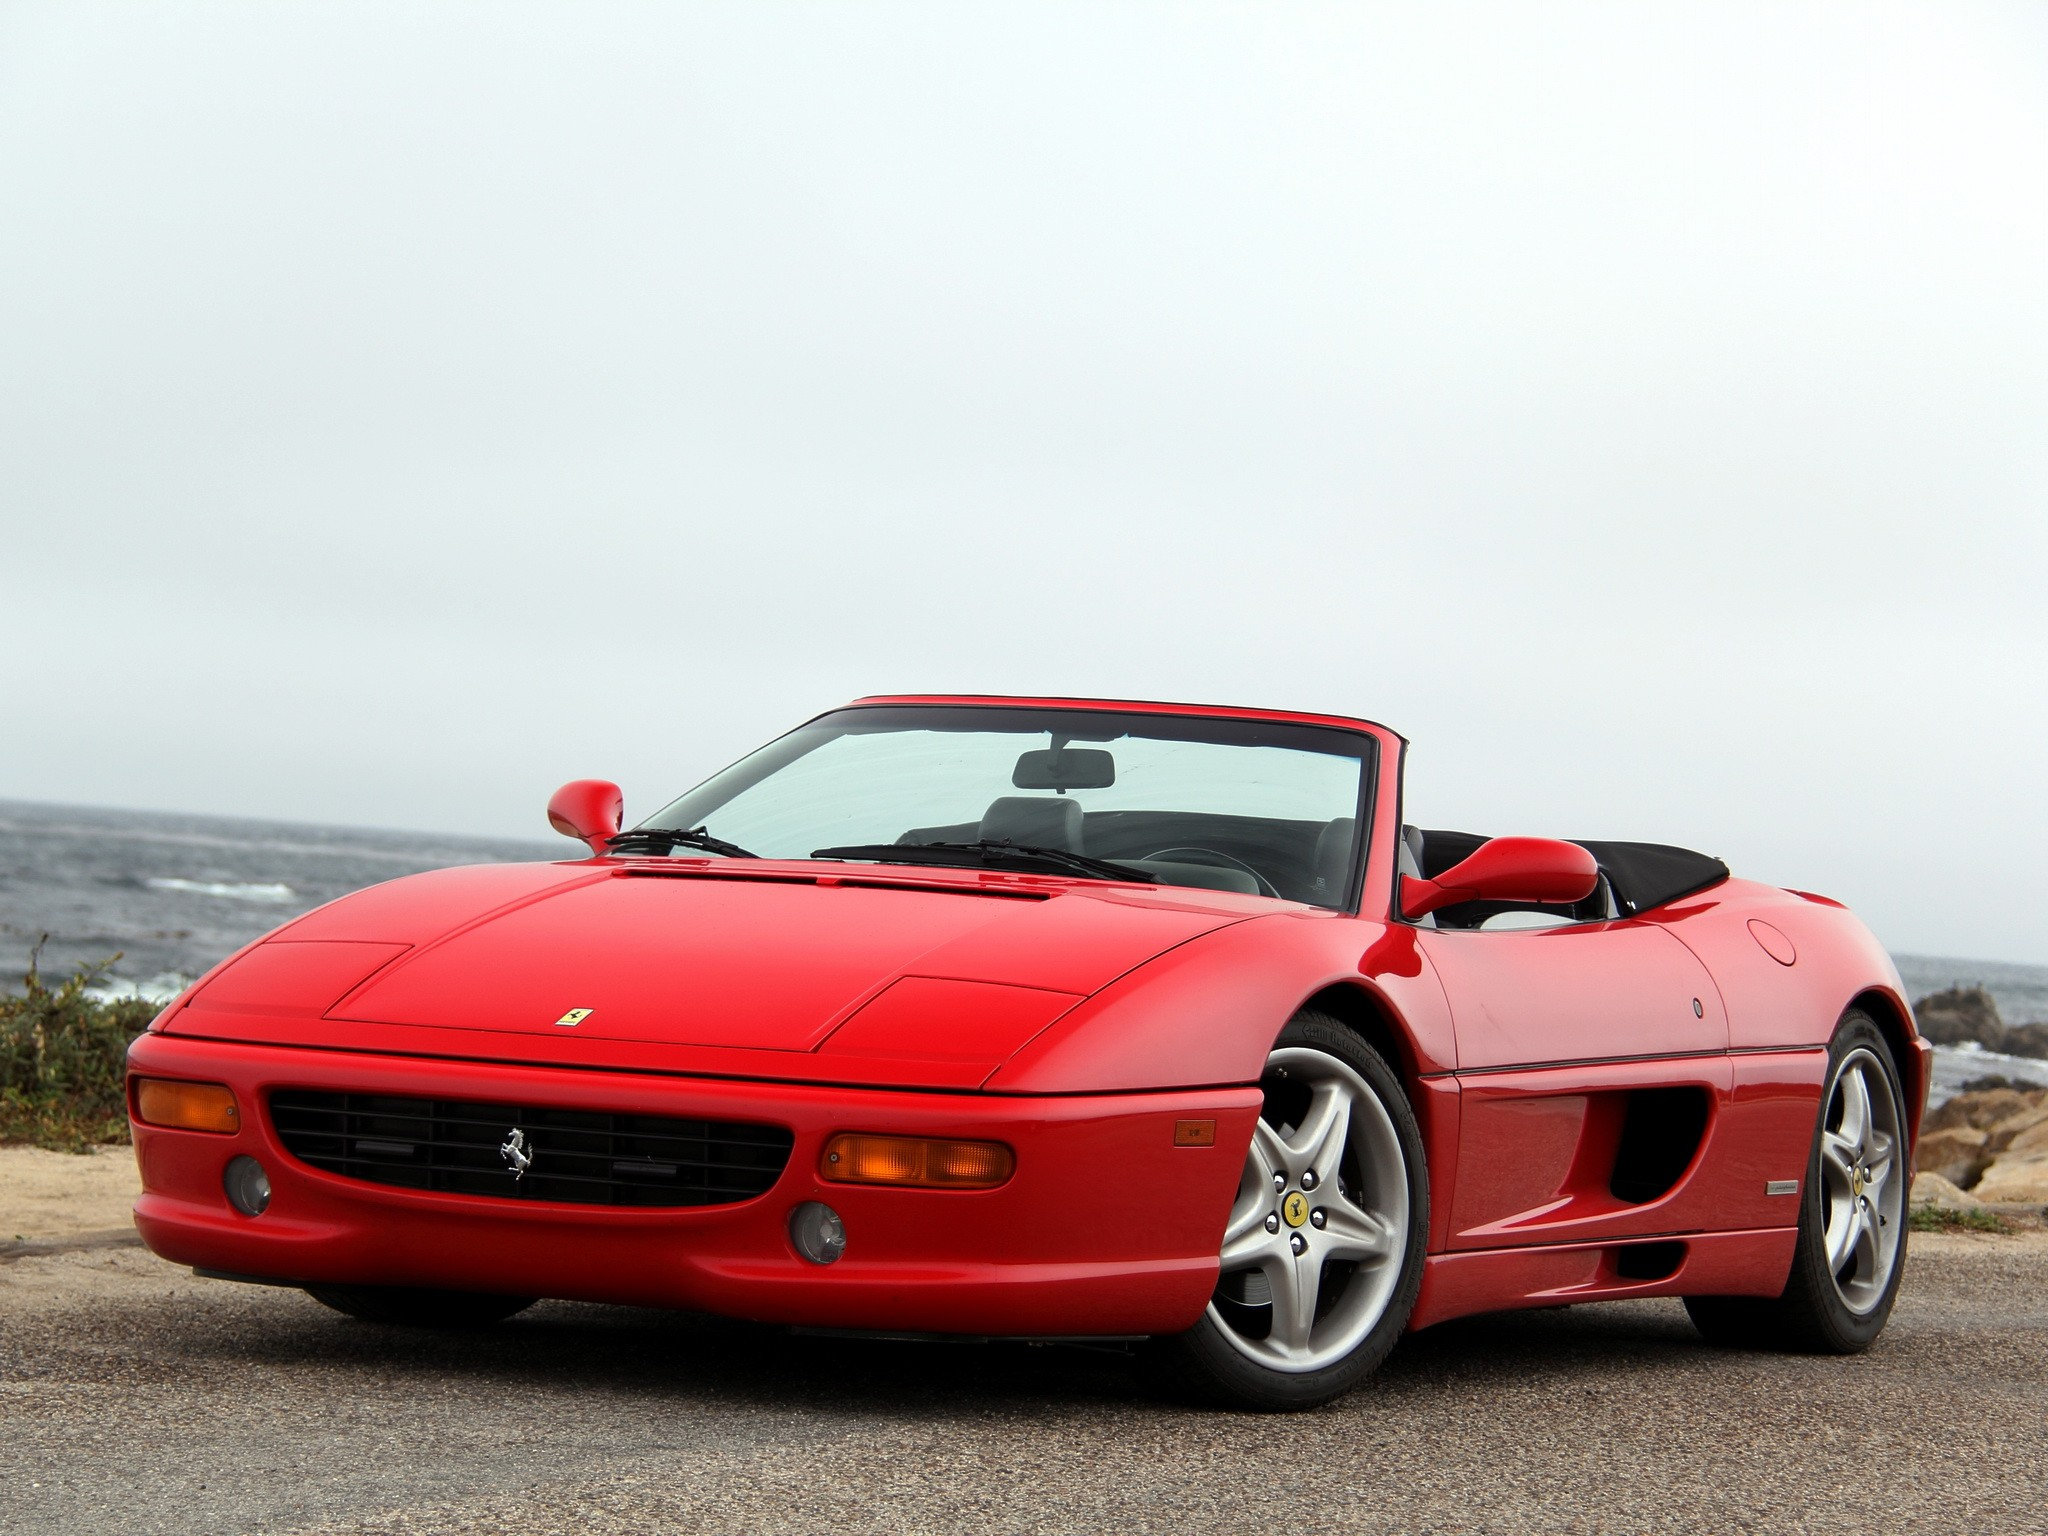 Ferrari Car Wallpaper Download Ferrari F355 Spider Specs 1995 1996 1997 1998 1999